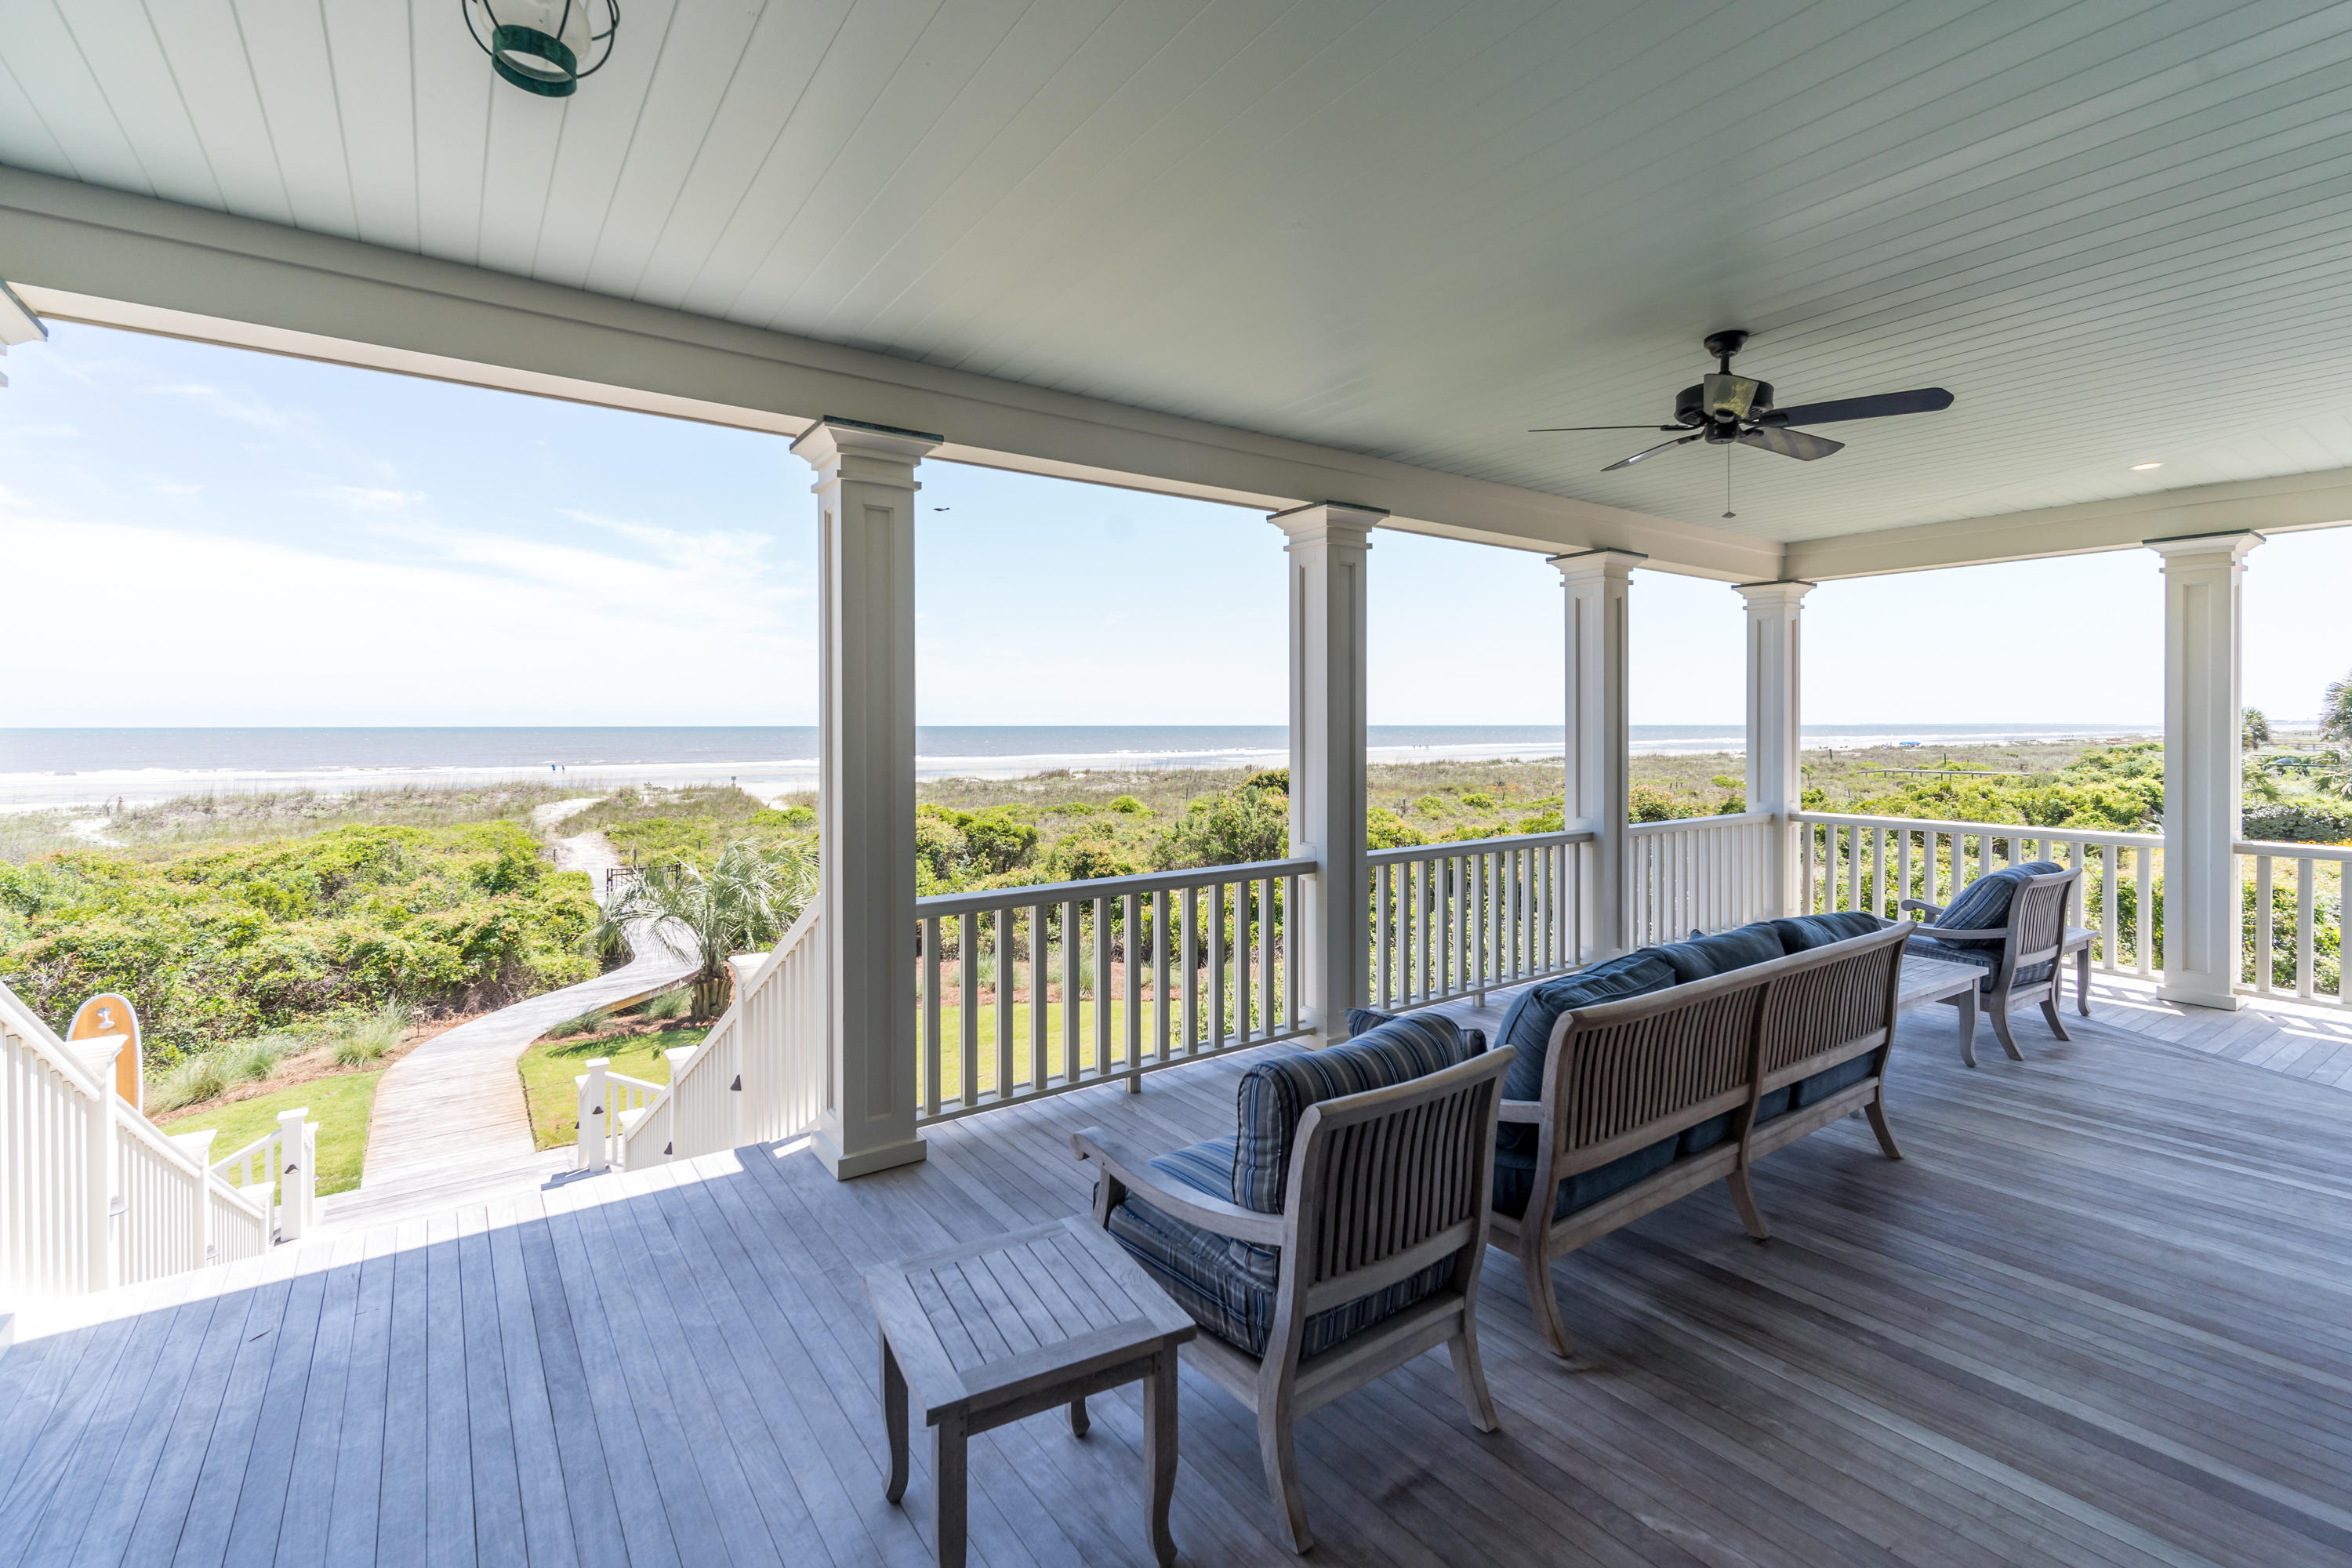 Isle of Palms Homes For Sale - 2 45th, Isle of Palms, SC - 4